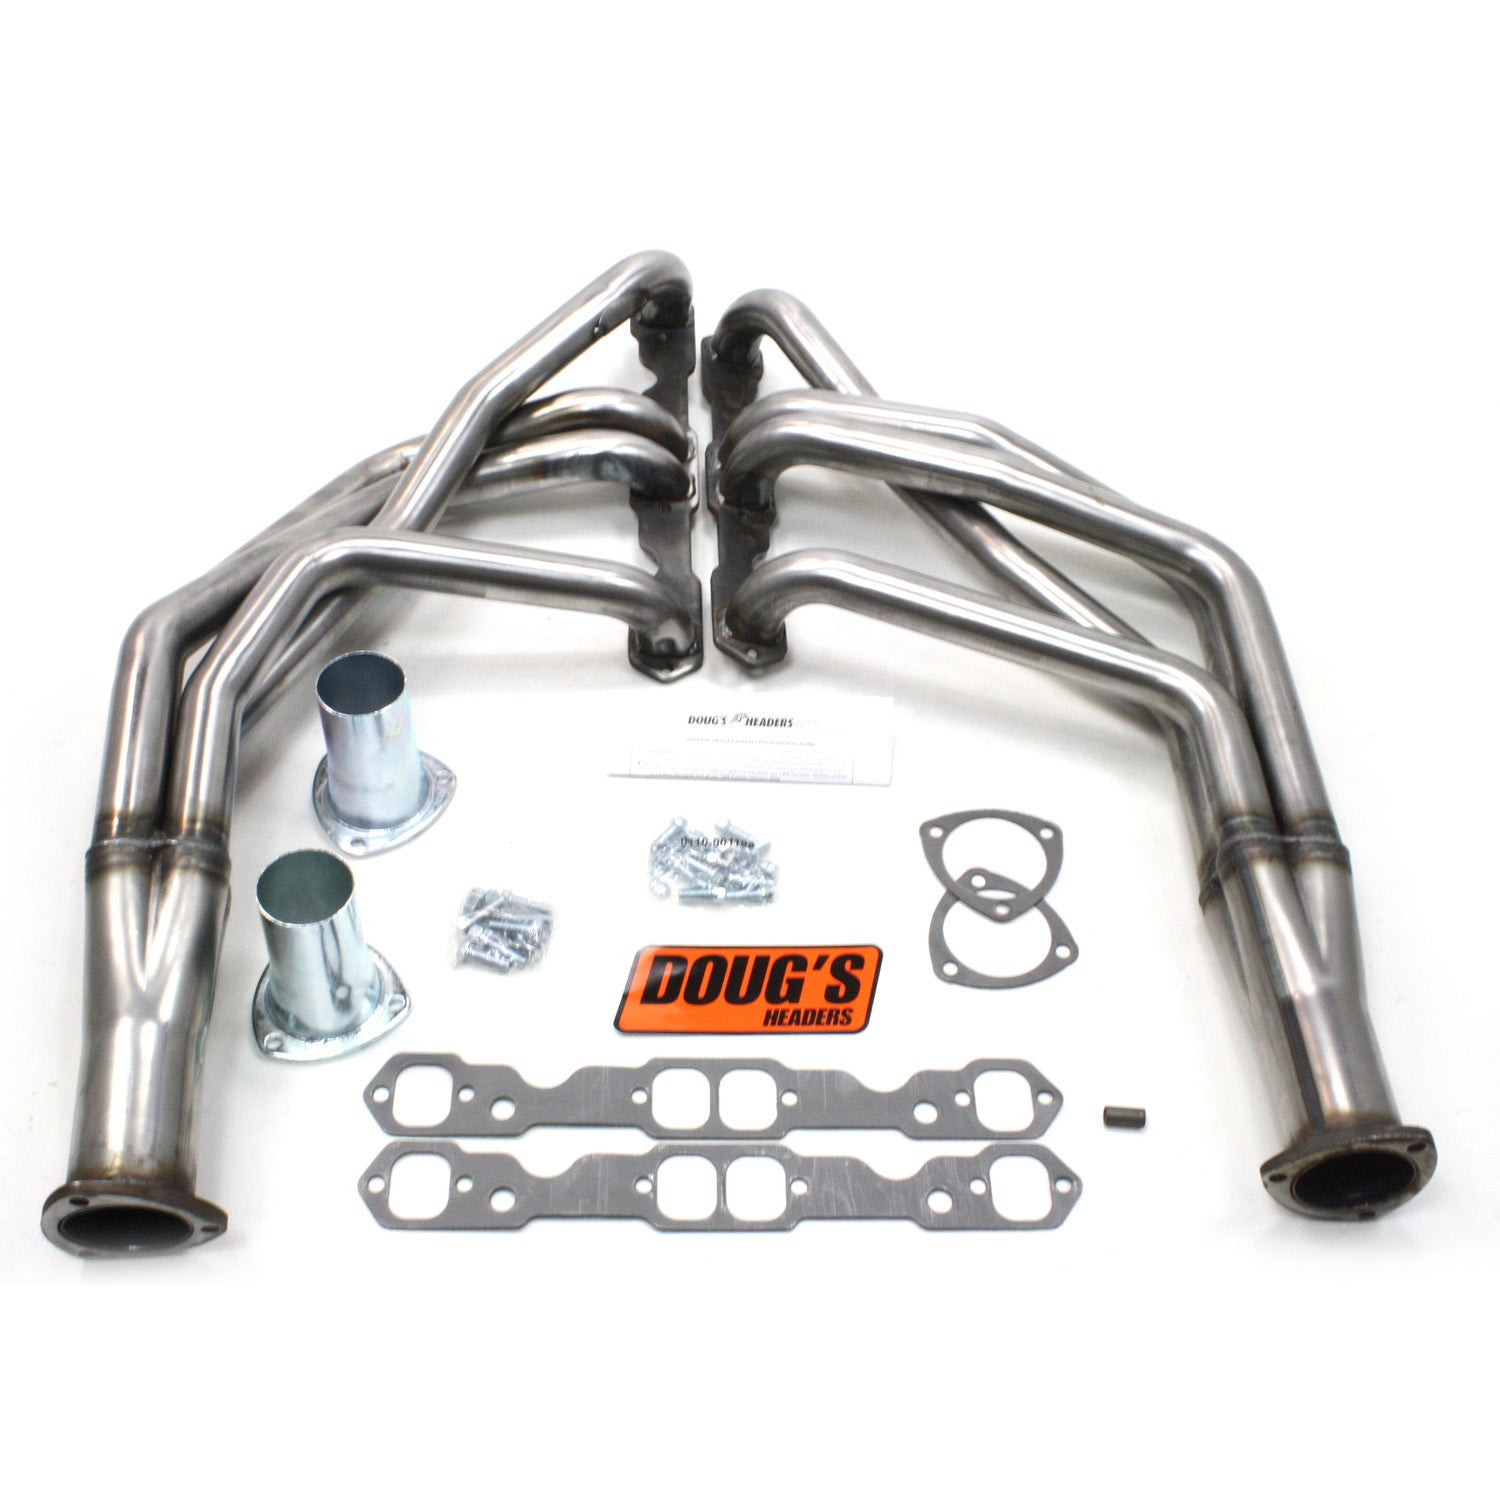 "Doug's Headers D368-R 1 3/4"" 4-Tube Full Length Header Chevrolet Camaro Small Block Chevrolet 67-69 Raw Steel"